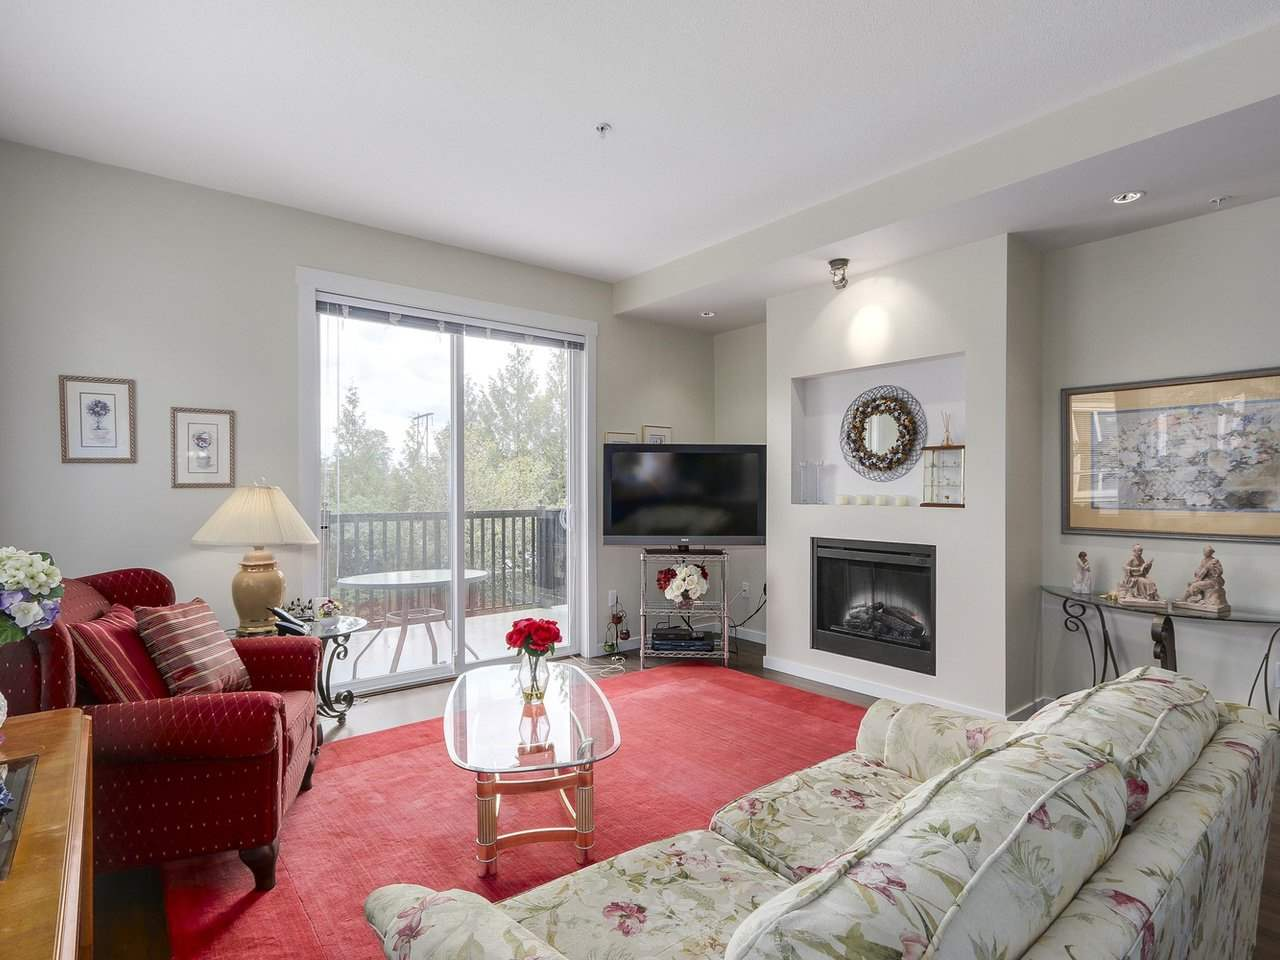 Photo 8: # 110 - 2418 Avon  Place in Port Coquitlam: Riverwood Townhouse for sale : MLS(r) # R2166312